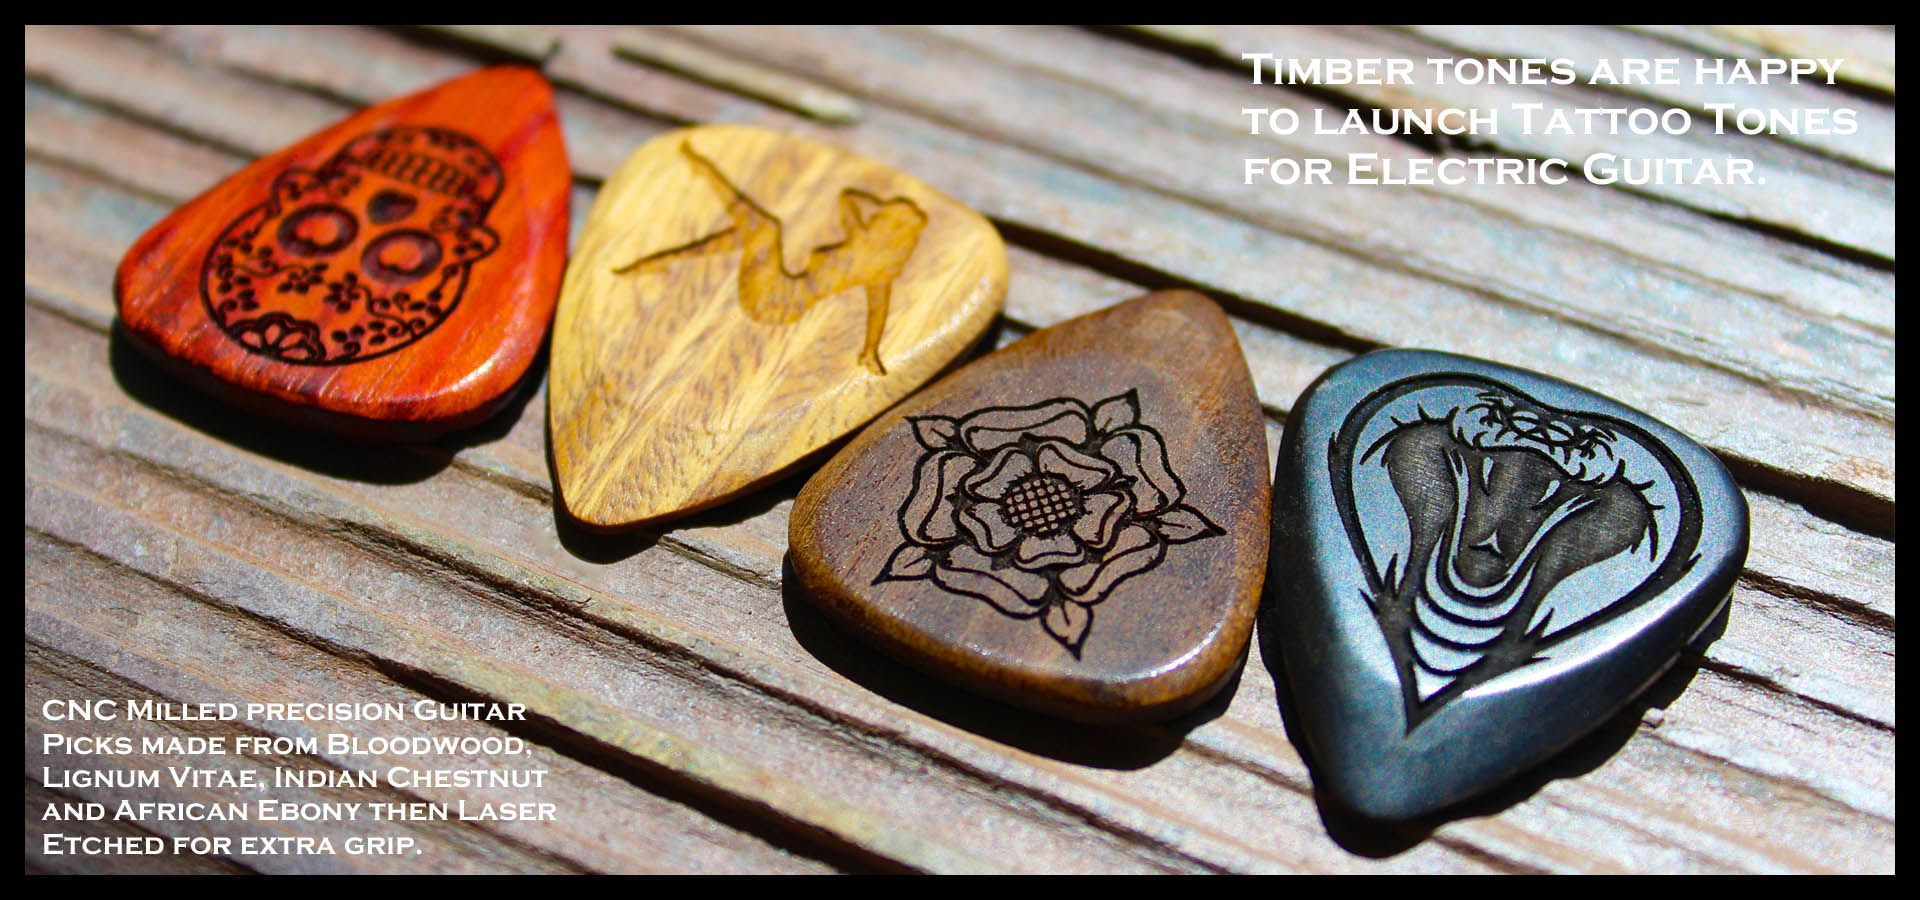 Timber Tones Largest Collection Of Luxury Guitar Picks